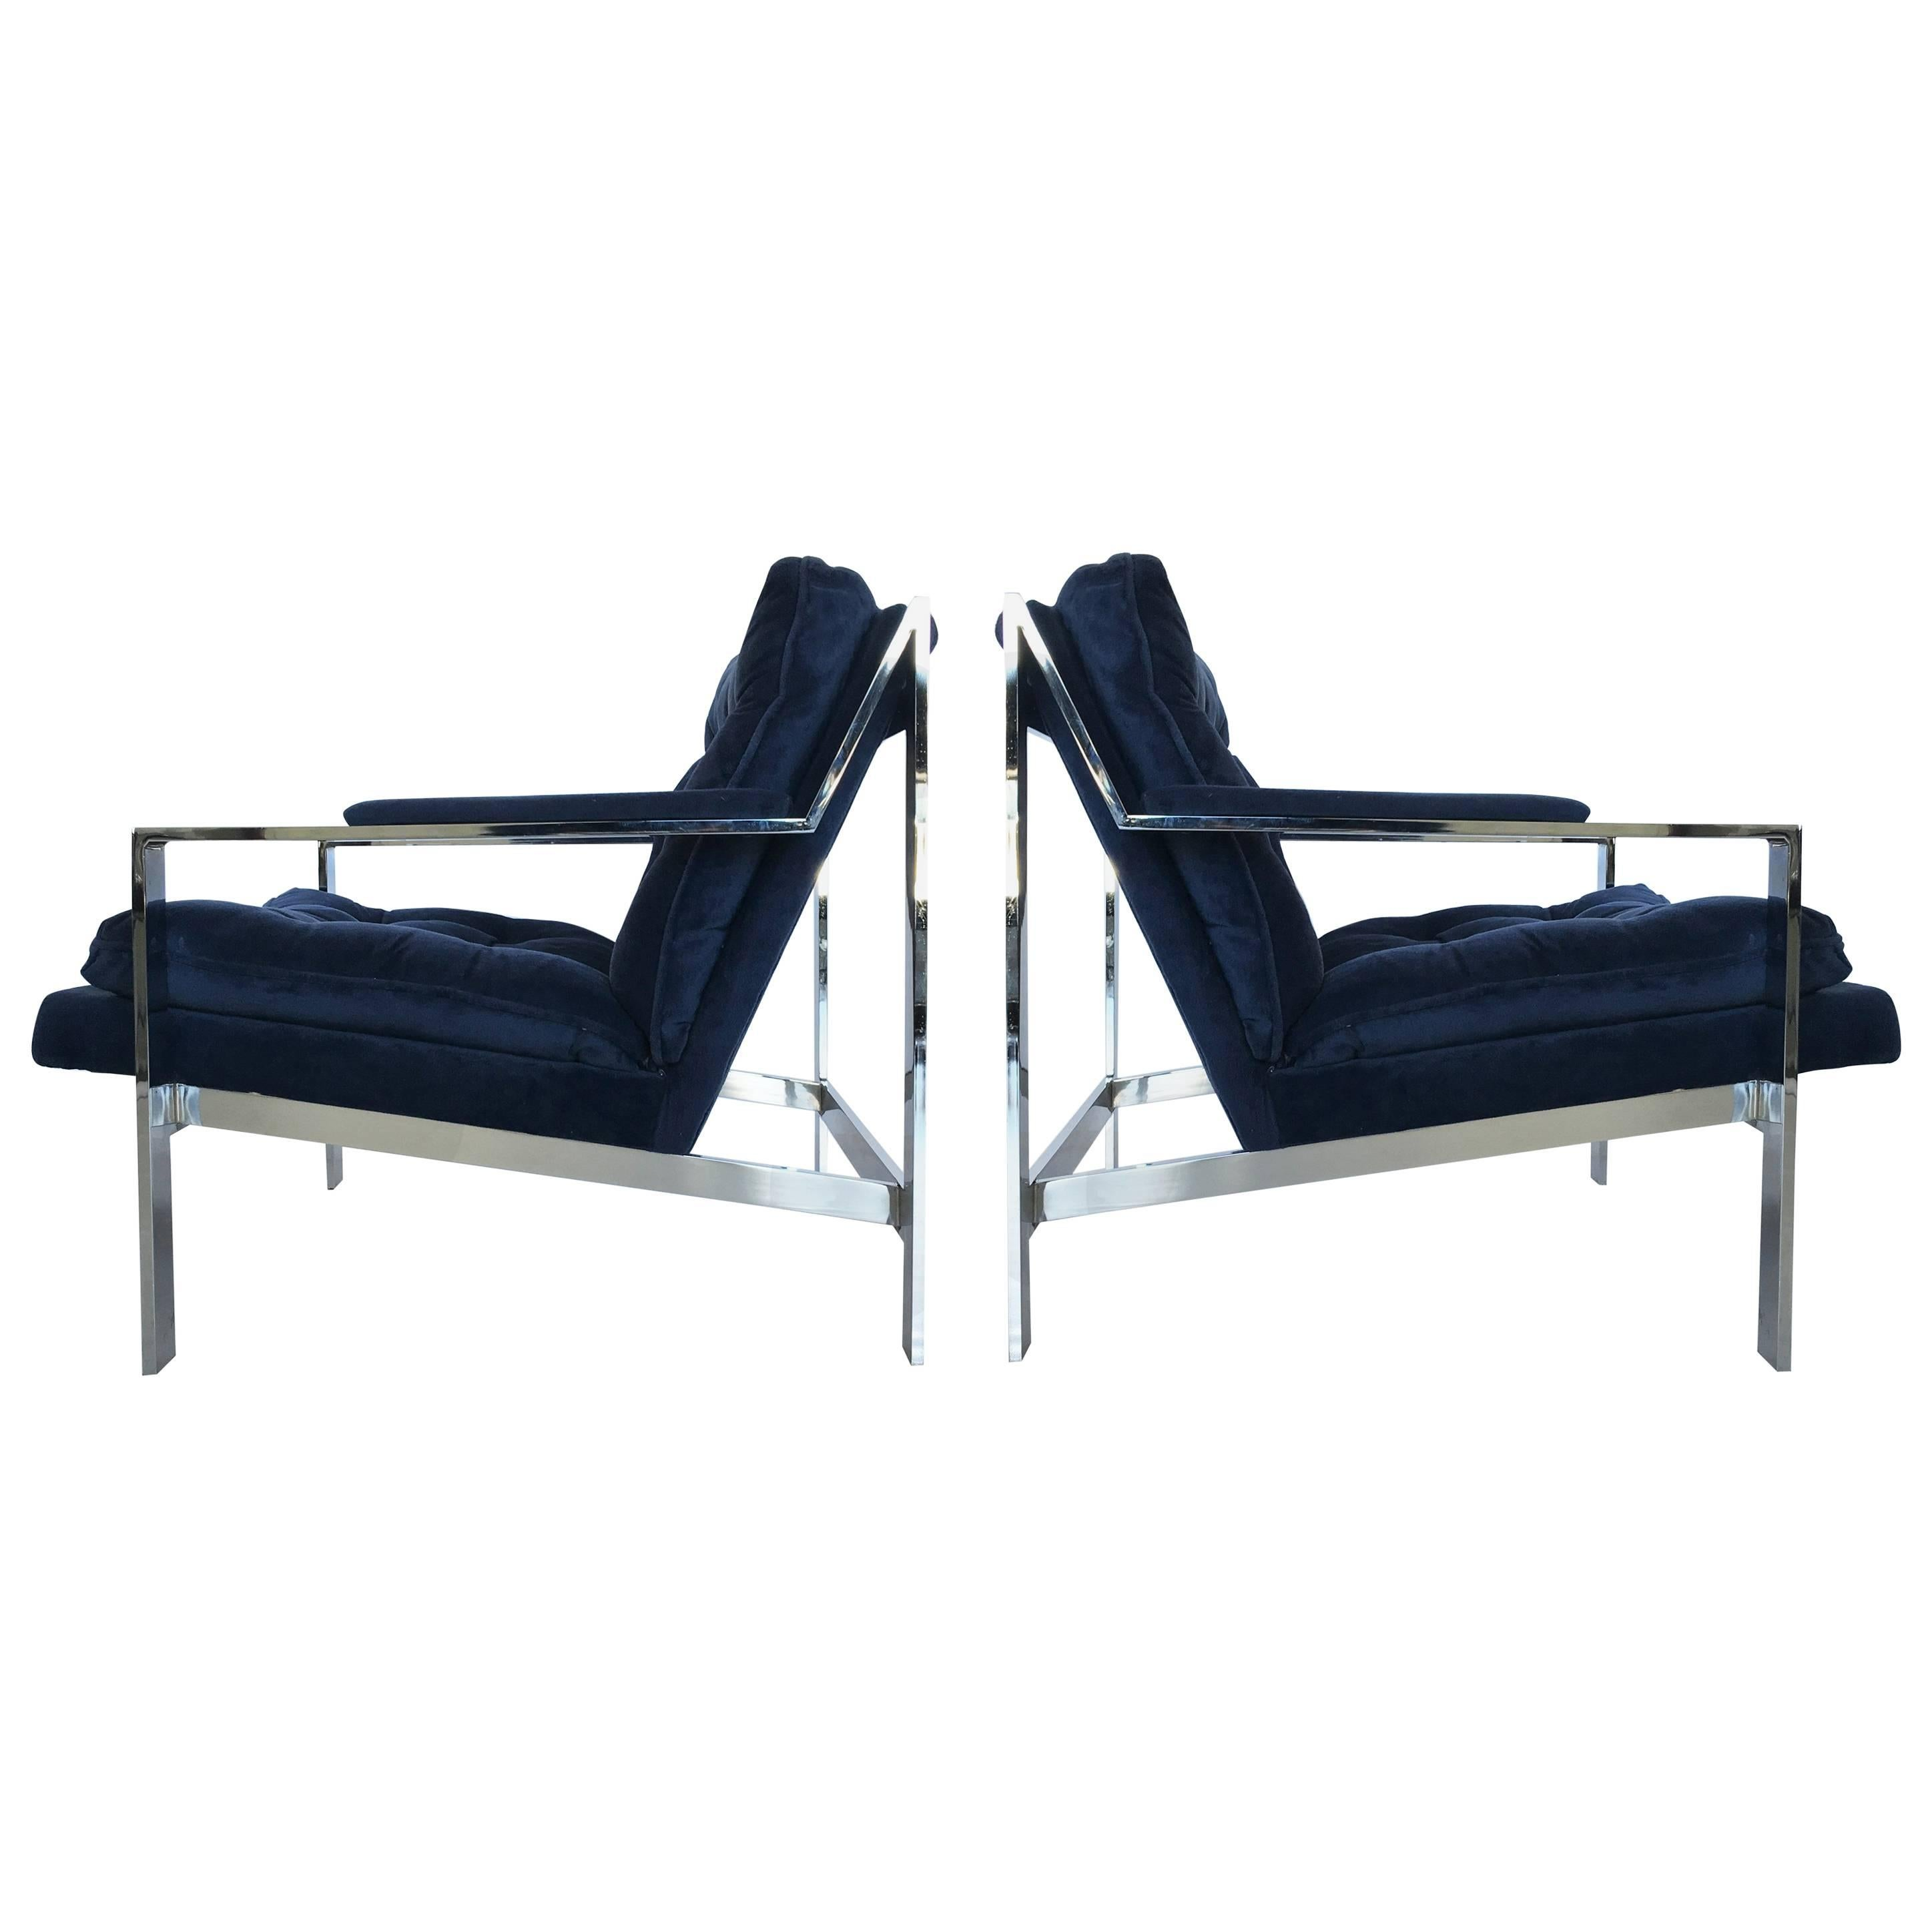 Pair Of Chrome Flat Bar Lounge Chairs By Cy Mann For Sale